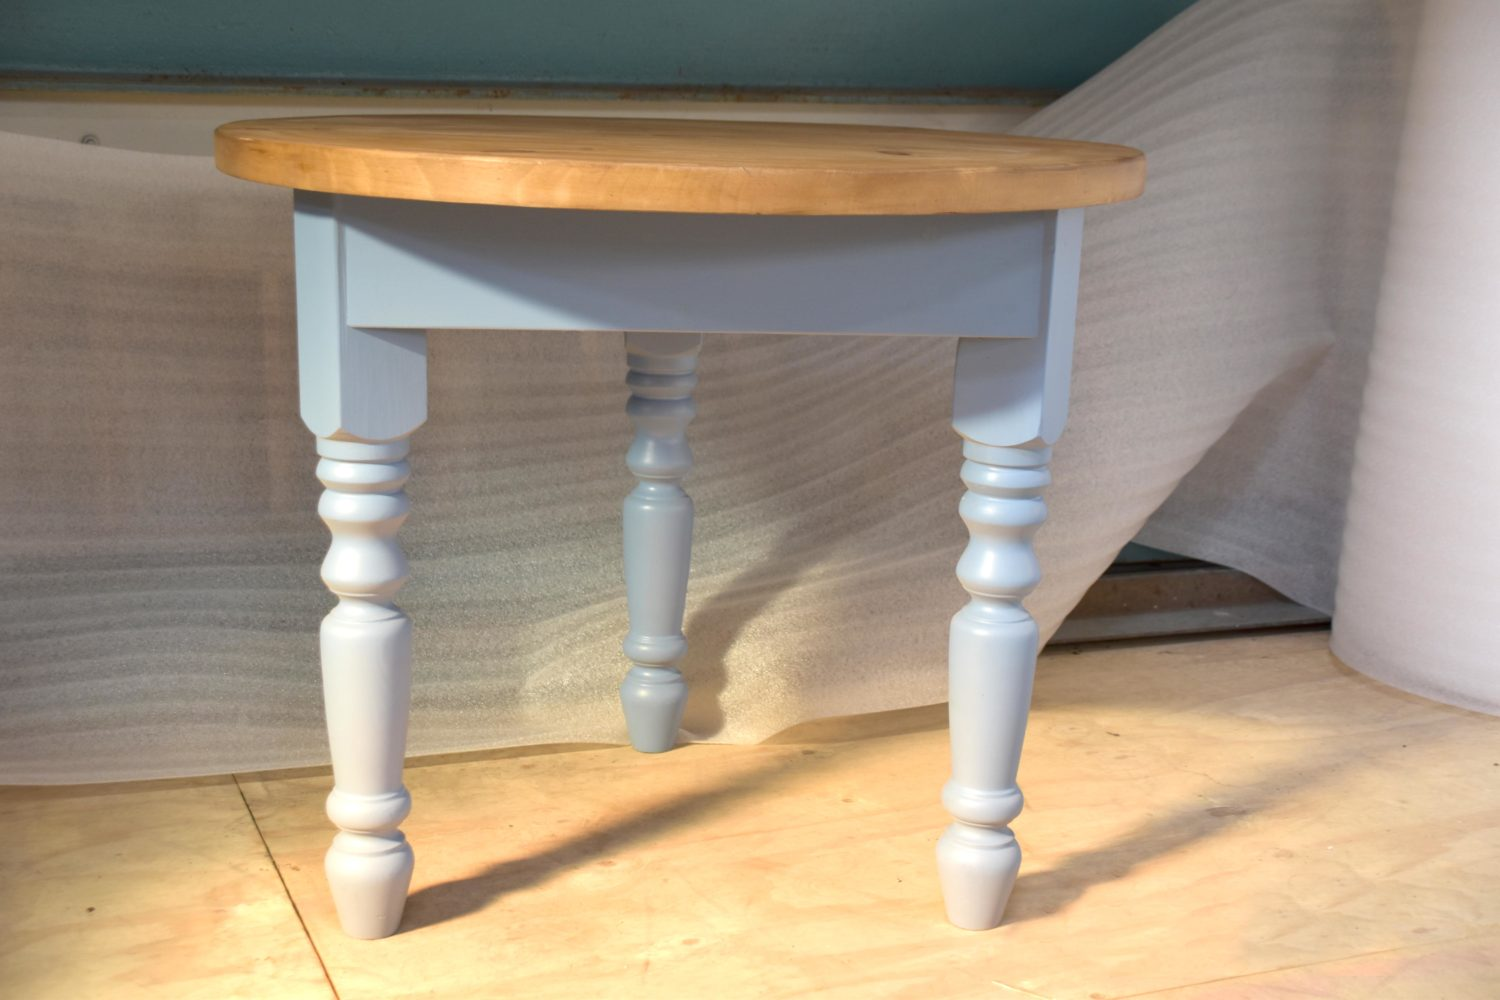 Cricket Table in the Mudd & Co factory sale 2020. Handcrafted kitchen and home furniture